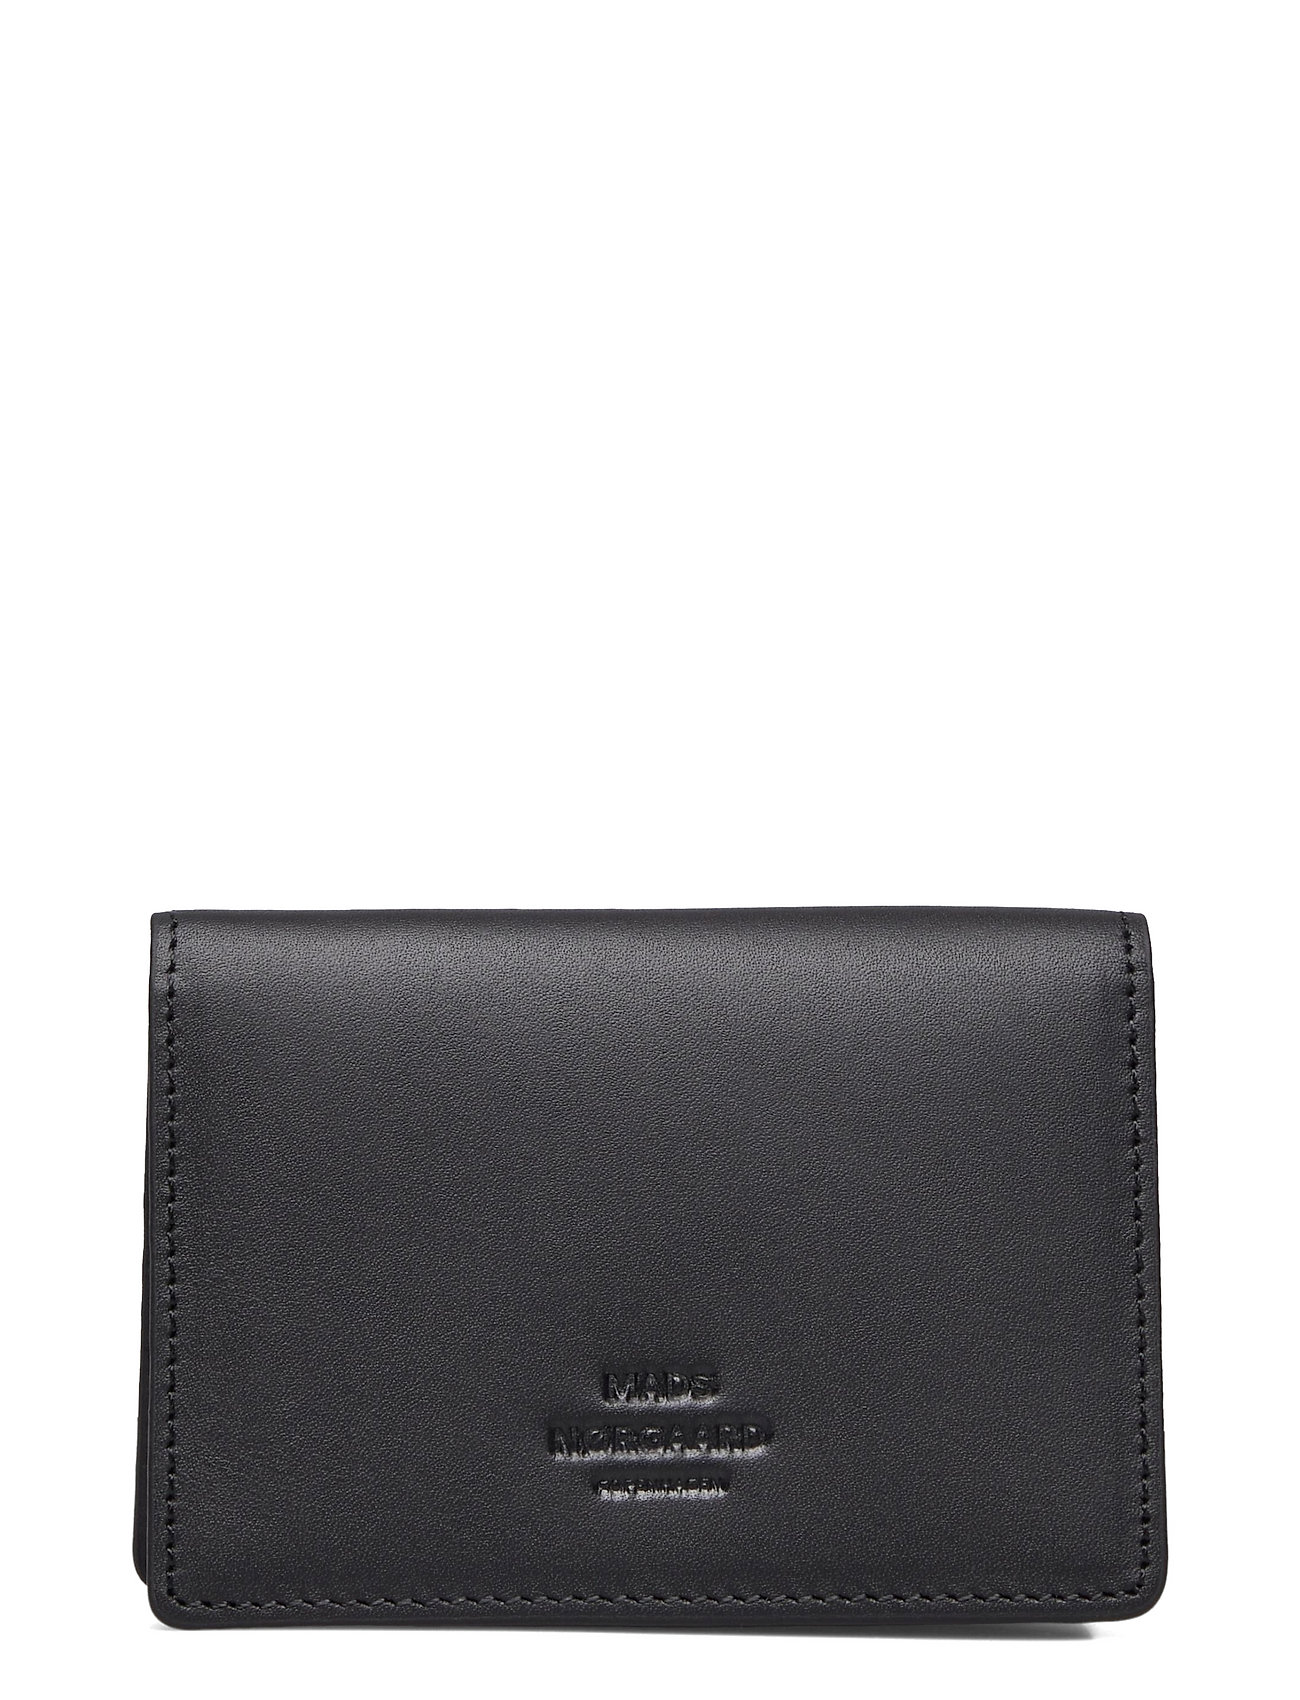 Leather Card Wallet Accessories Wallets Classic Wallets Sort Mads Nørgaard